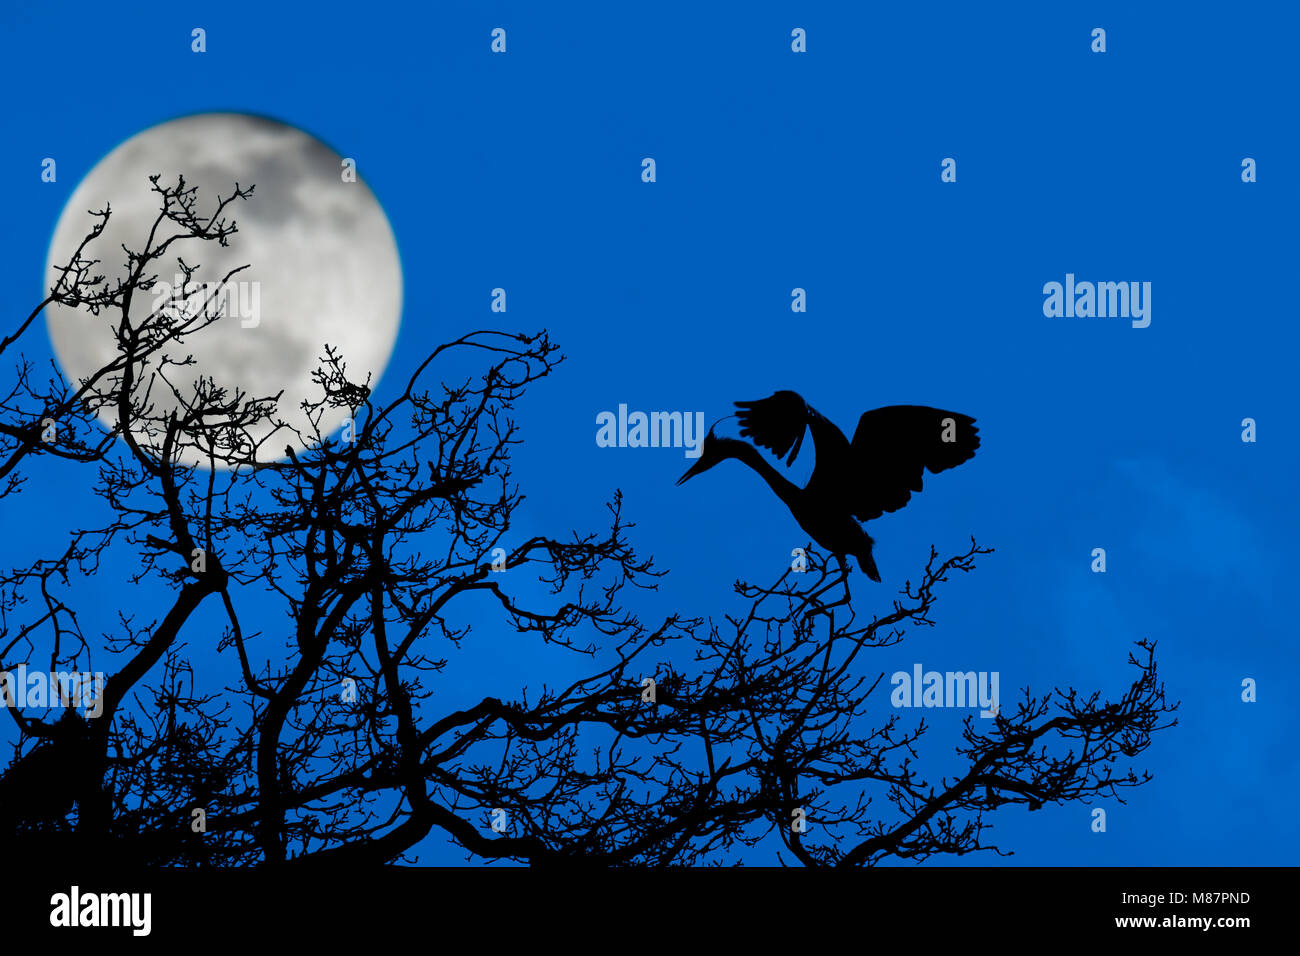 Grey heron (Ardea cinerea) landing on nest in tree at heronry / heron rookery silhouetted at night with full moon - Stock Image